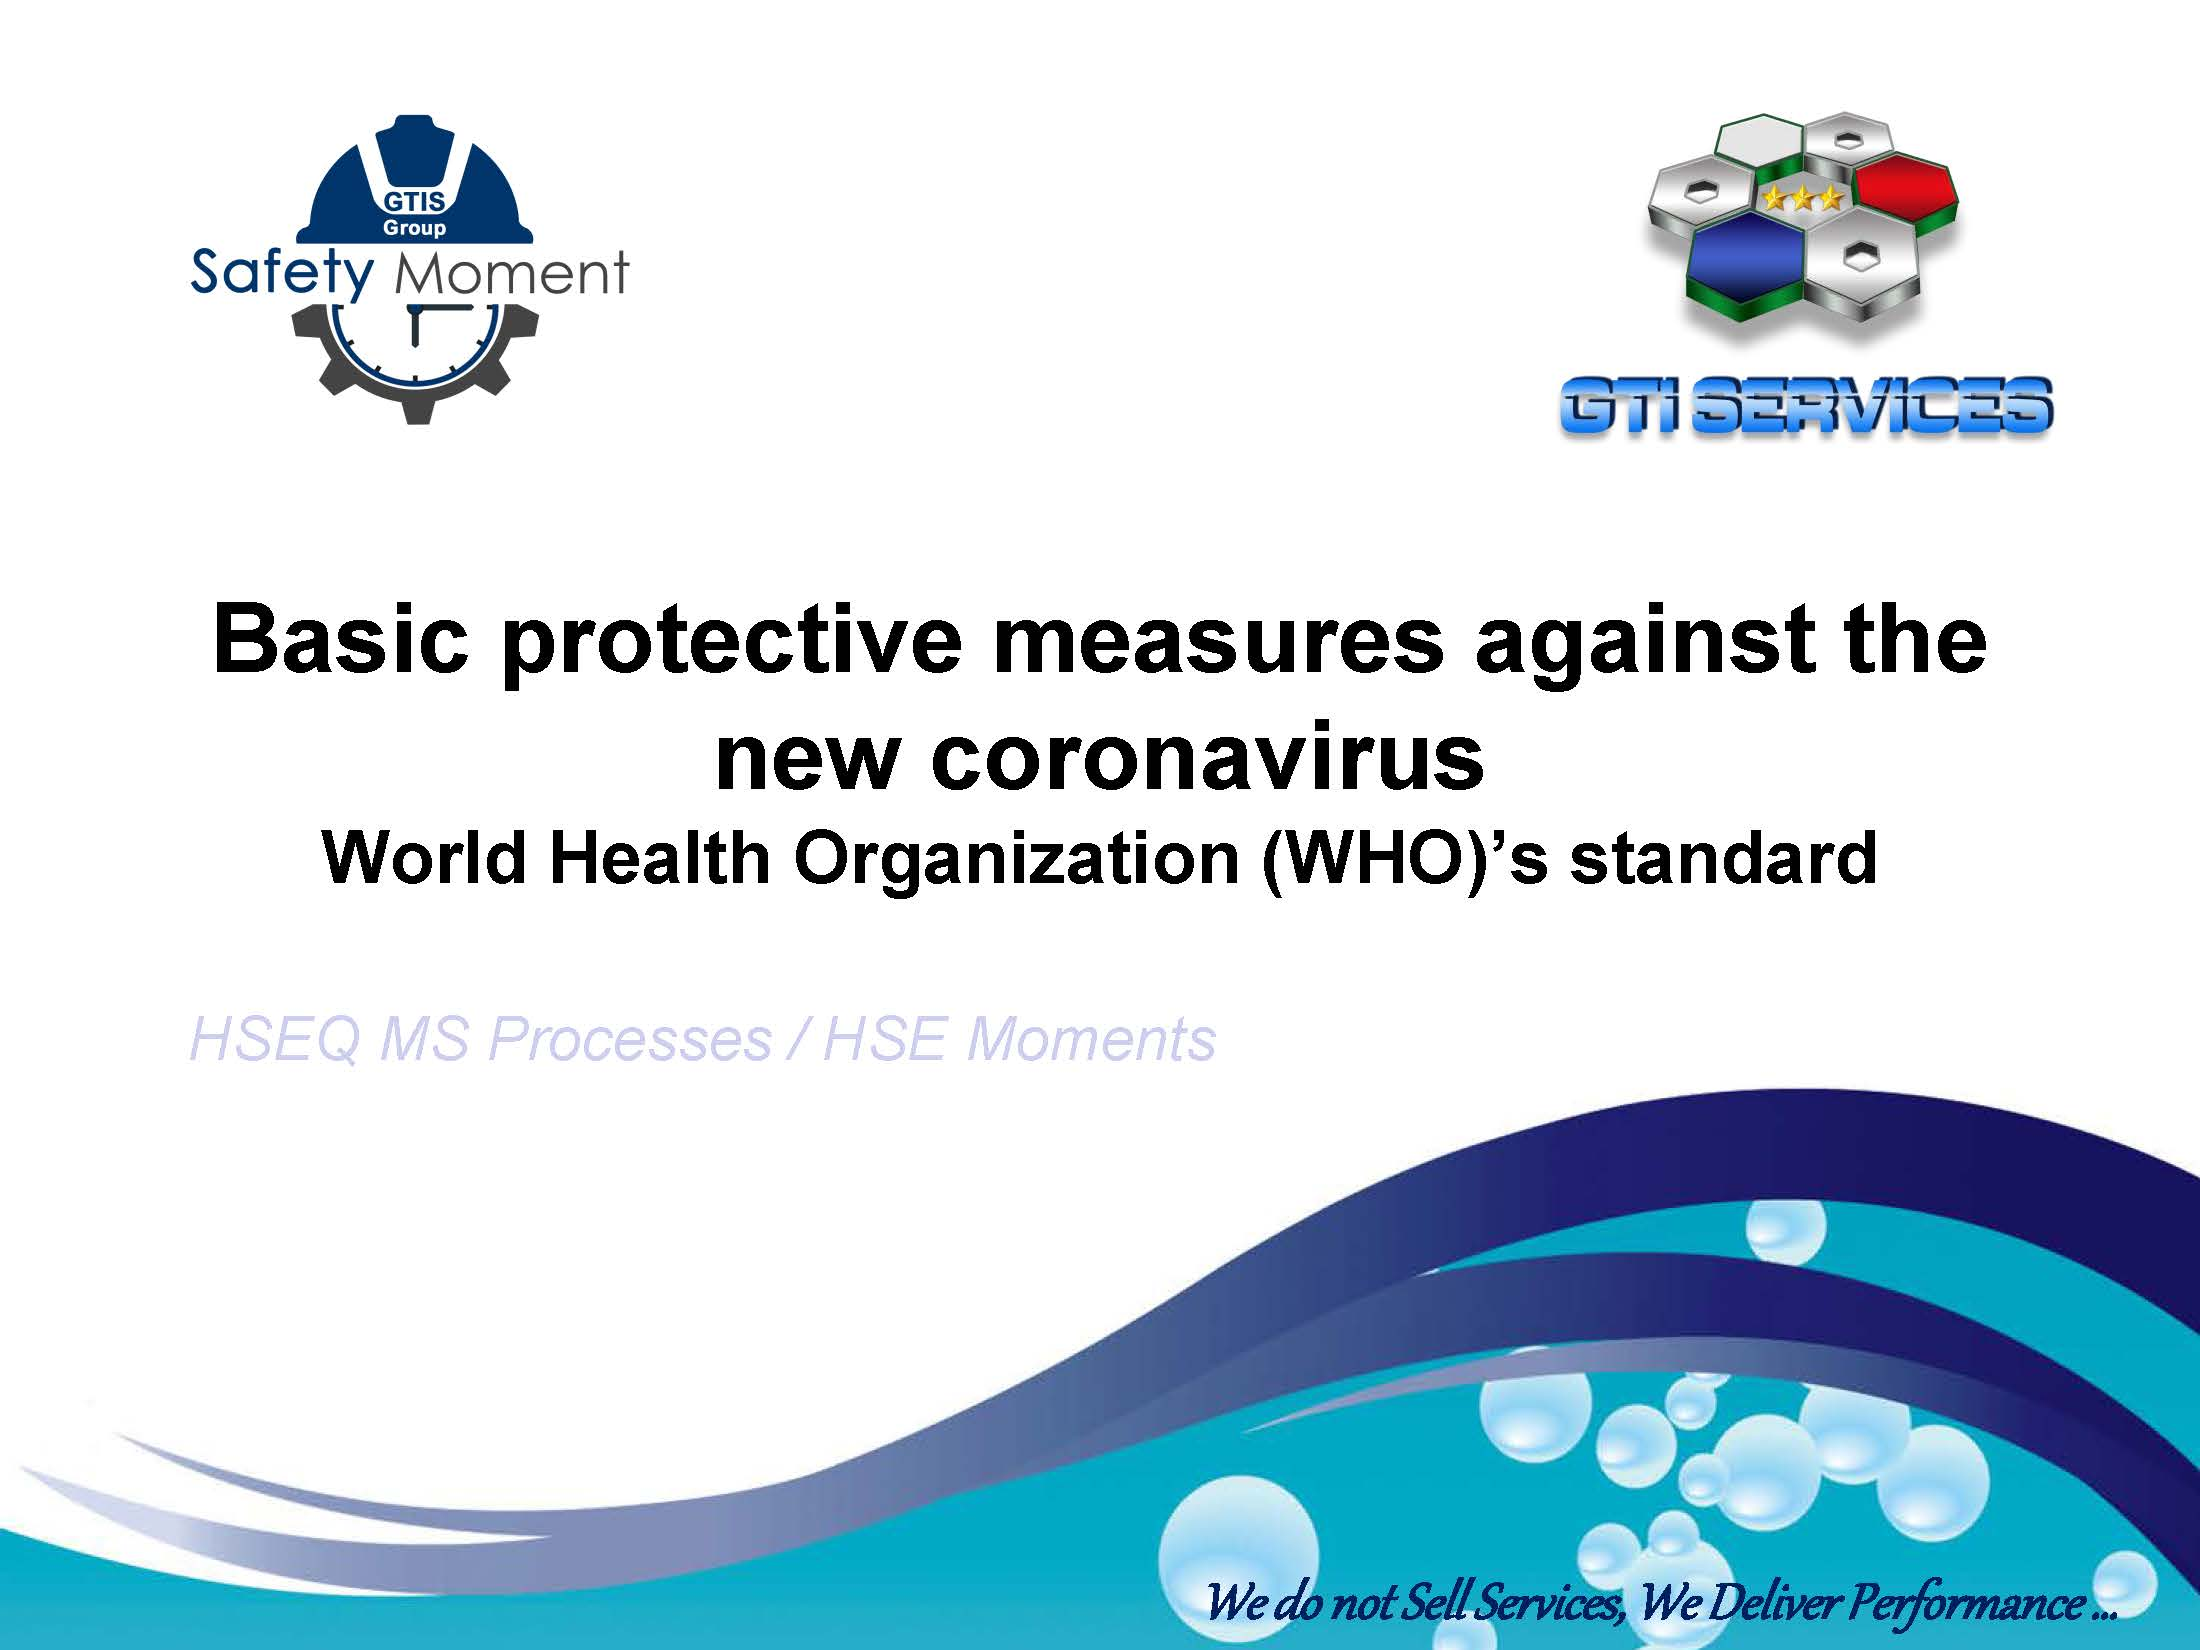 20200217 - Safety Moment - Basic Protective Measures against the New Coronavirus (WHO Standard)_Page_1